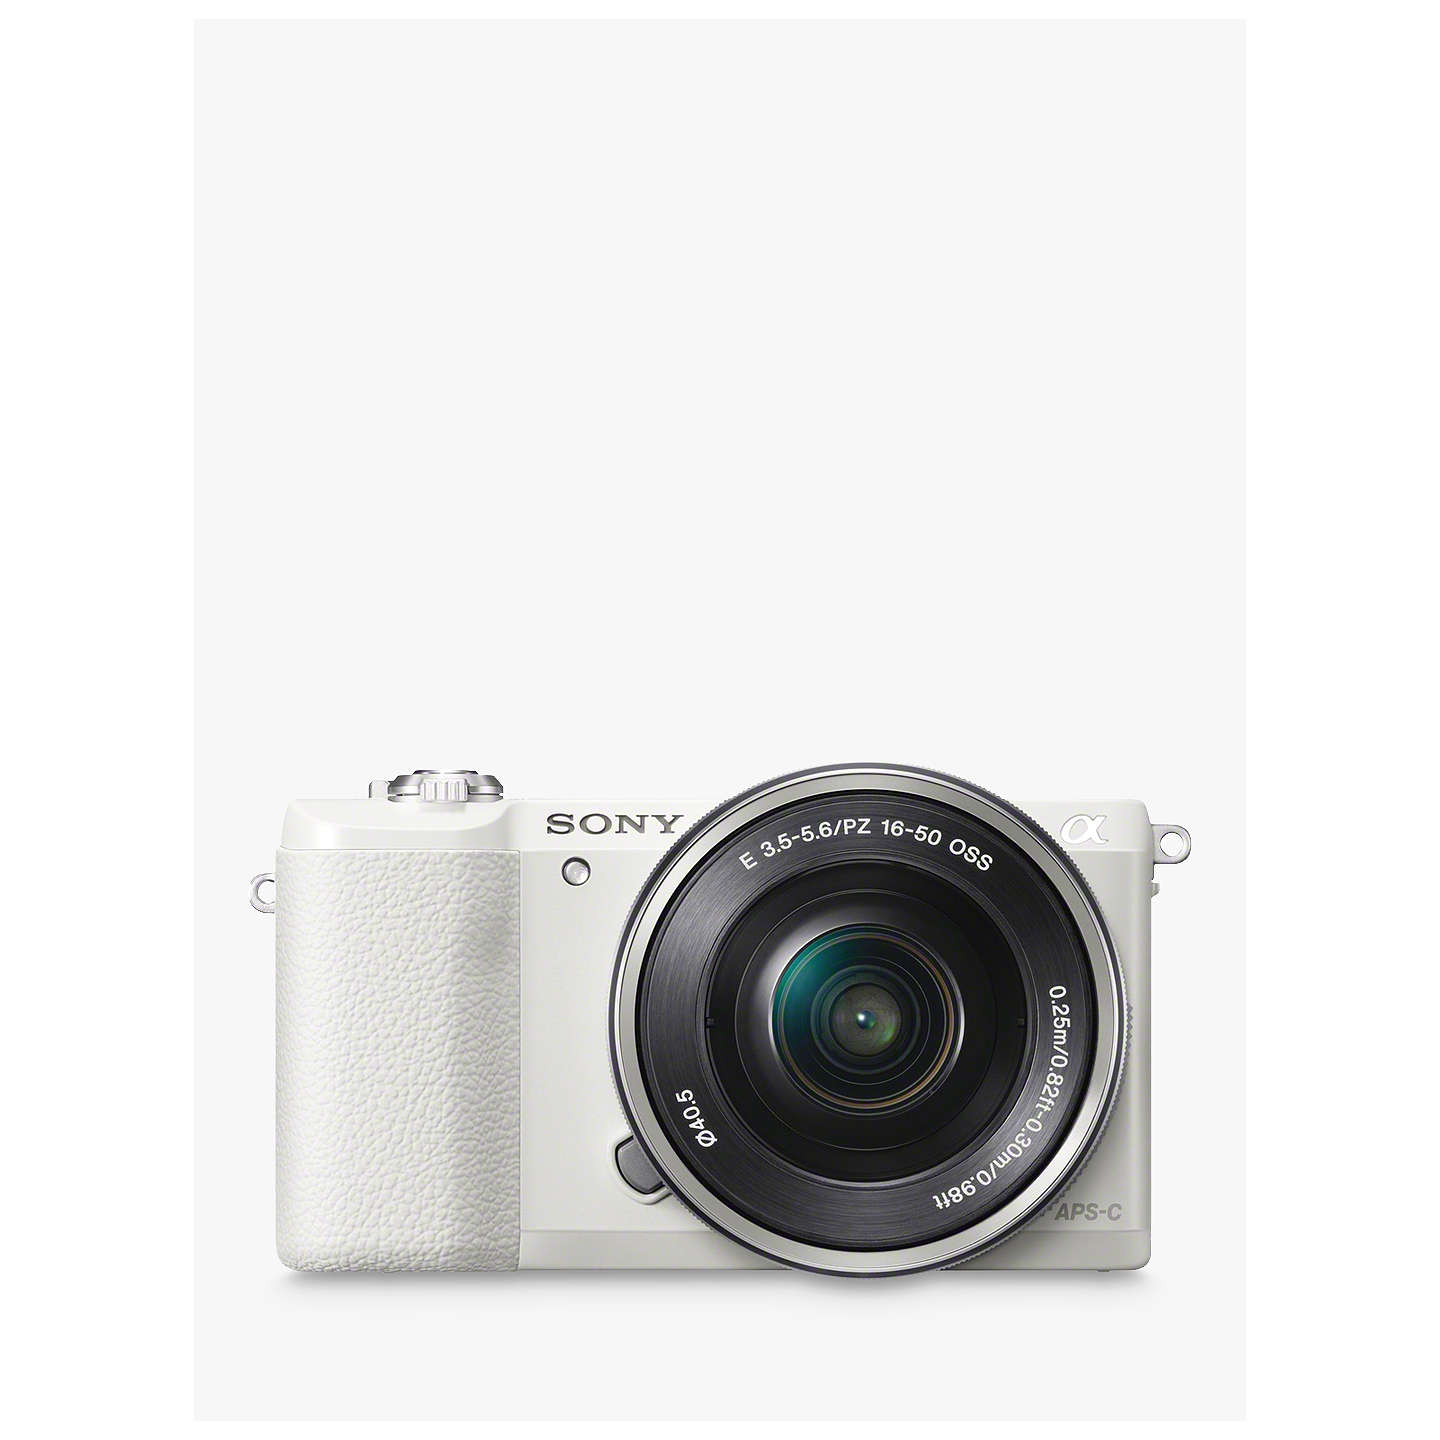 """Sony A5100 Compact System Camera With 16 50mm Oss Lens, Hd 1080p, 24.3 Mp, Wi Fi, Nfc, Oled, 3"""" Tilting Touch Screen, White by Sony"""